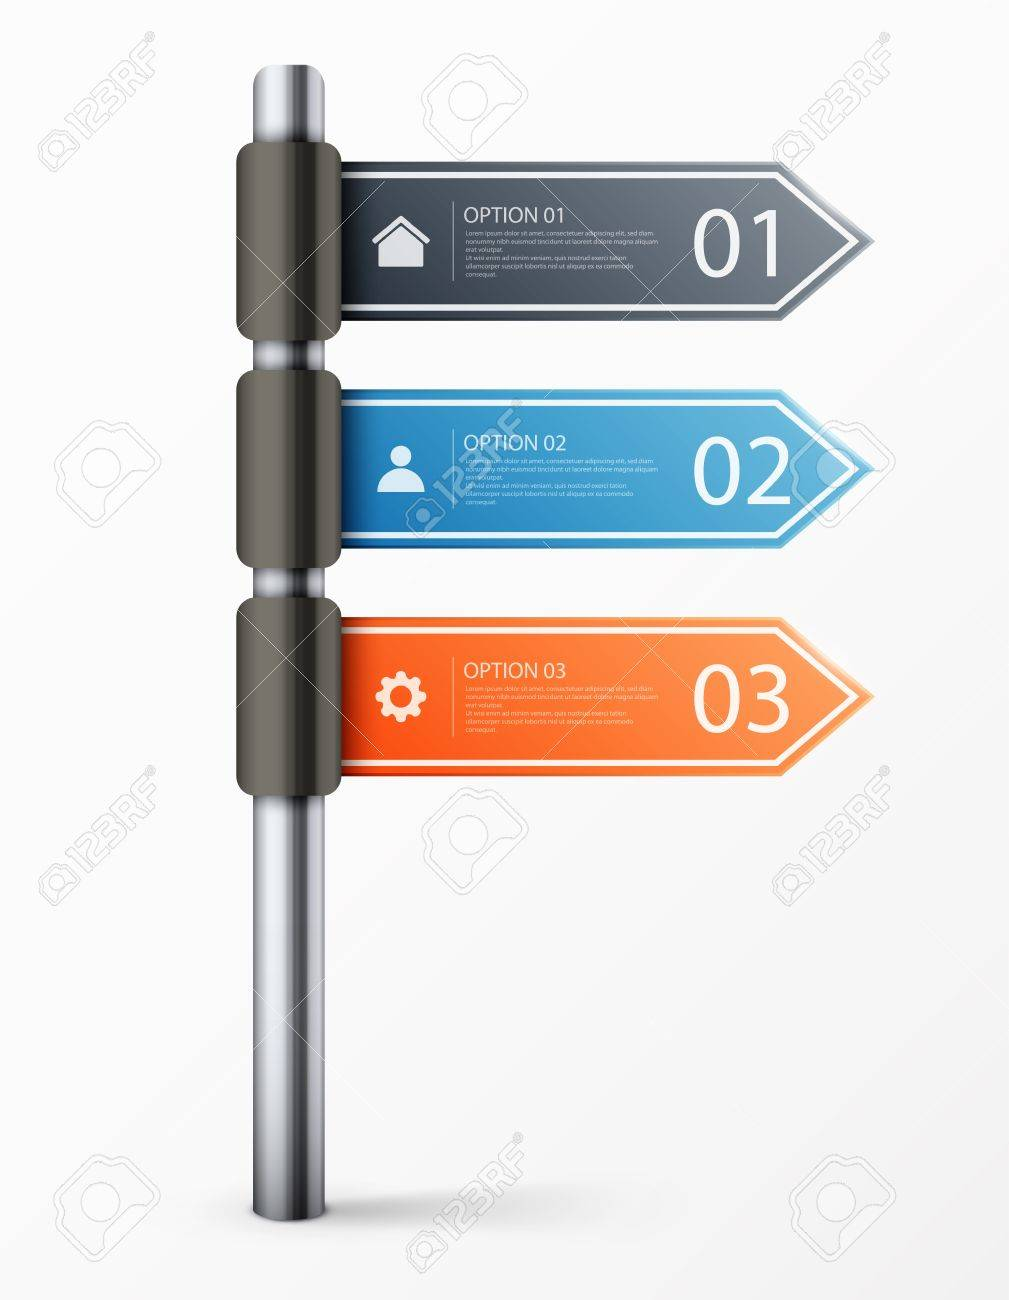 Modern road sign design template for infographics, sign banners, graphic or website layout. Stock Vector - 19744327